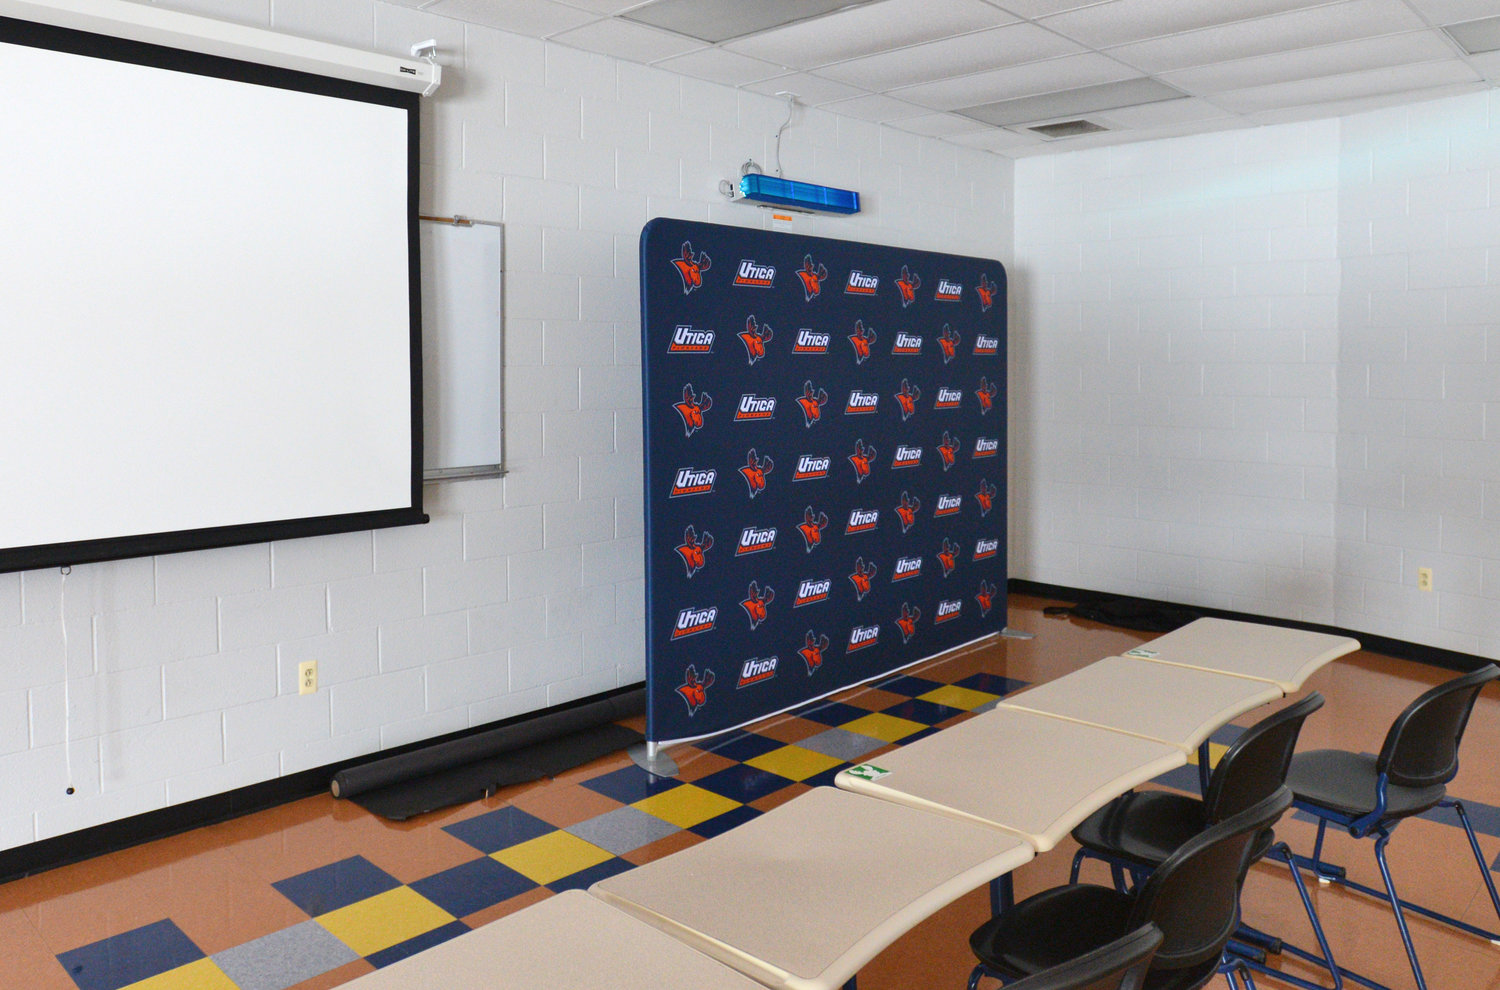 SPECIAL WALL LIGHTING — Shown here at upper right in an athletic facility classroom at Utica College is an AeroMed Germocidal Ultraviolet Fixture light, designed to irradiate air that may be contaminated with virus particles including COVID-19 and the flu. The college purchased 248 of the lights, and they were installed in every classroom and in the Gary Kunath Fitness Center.